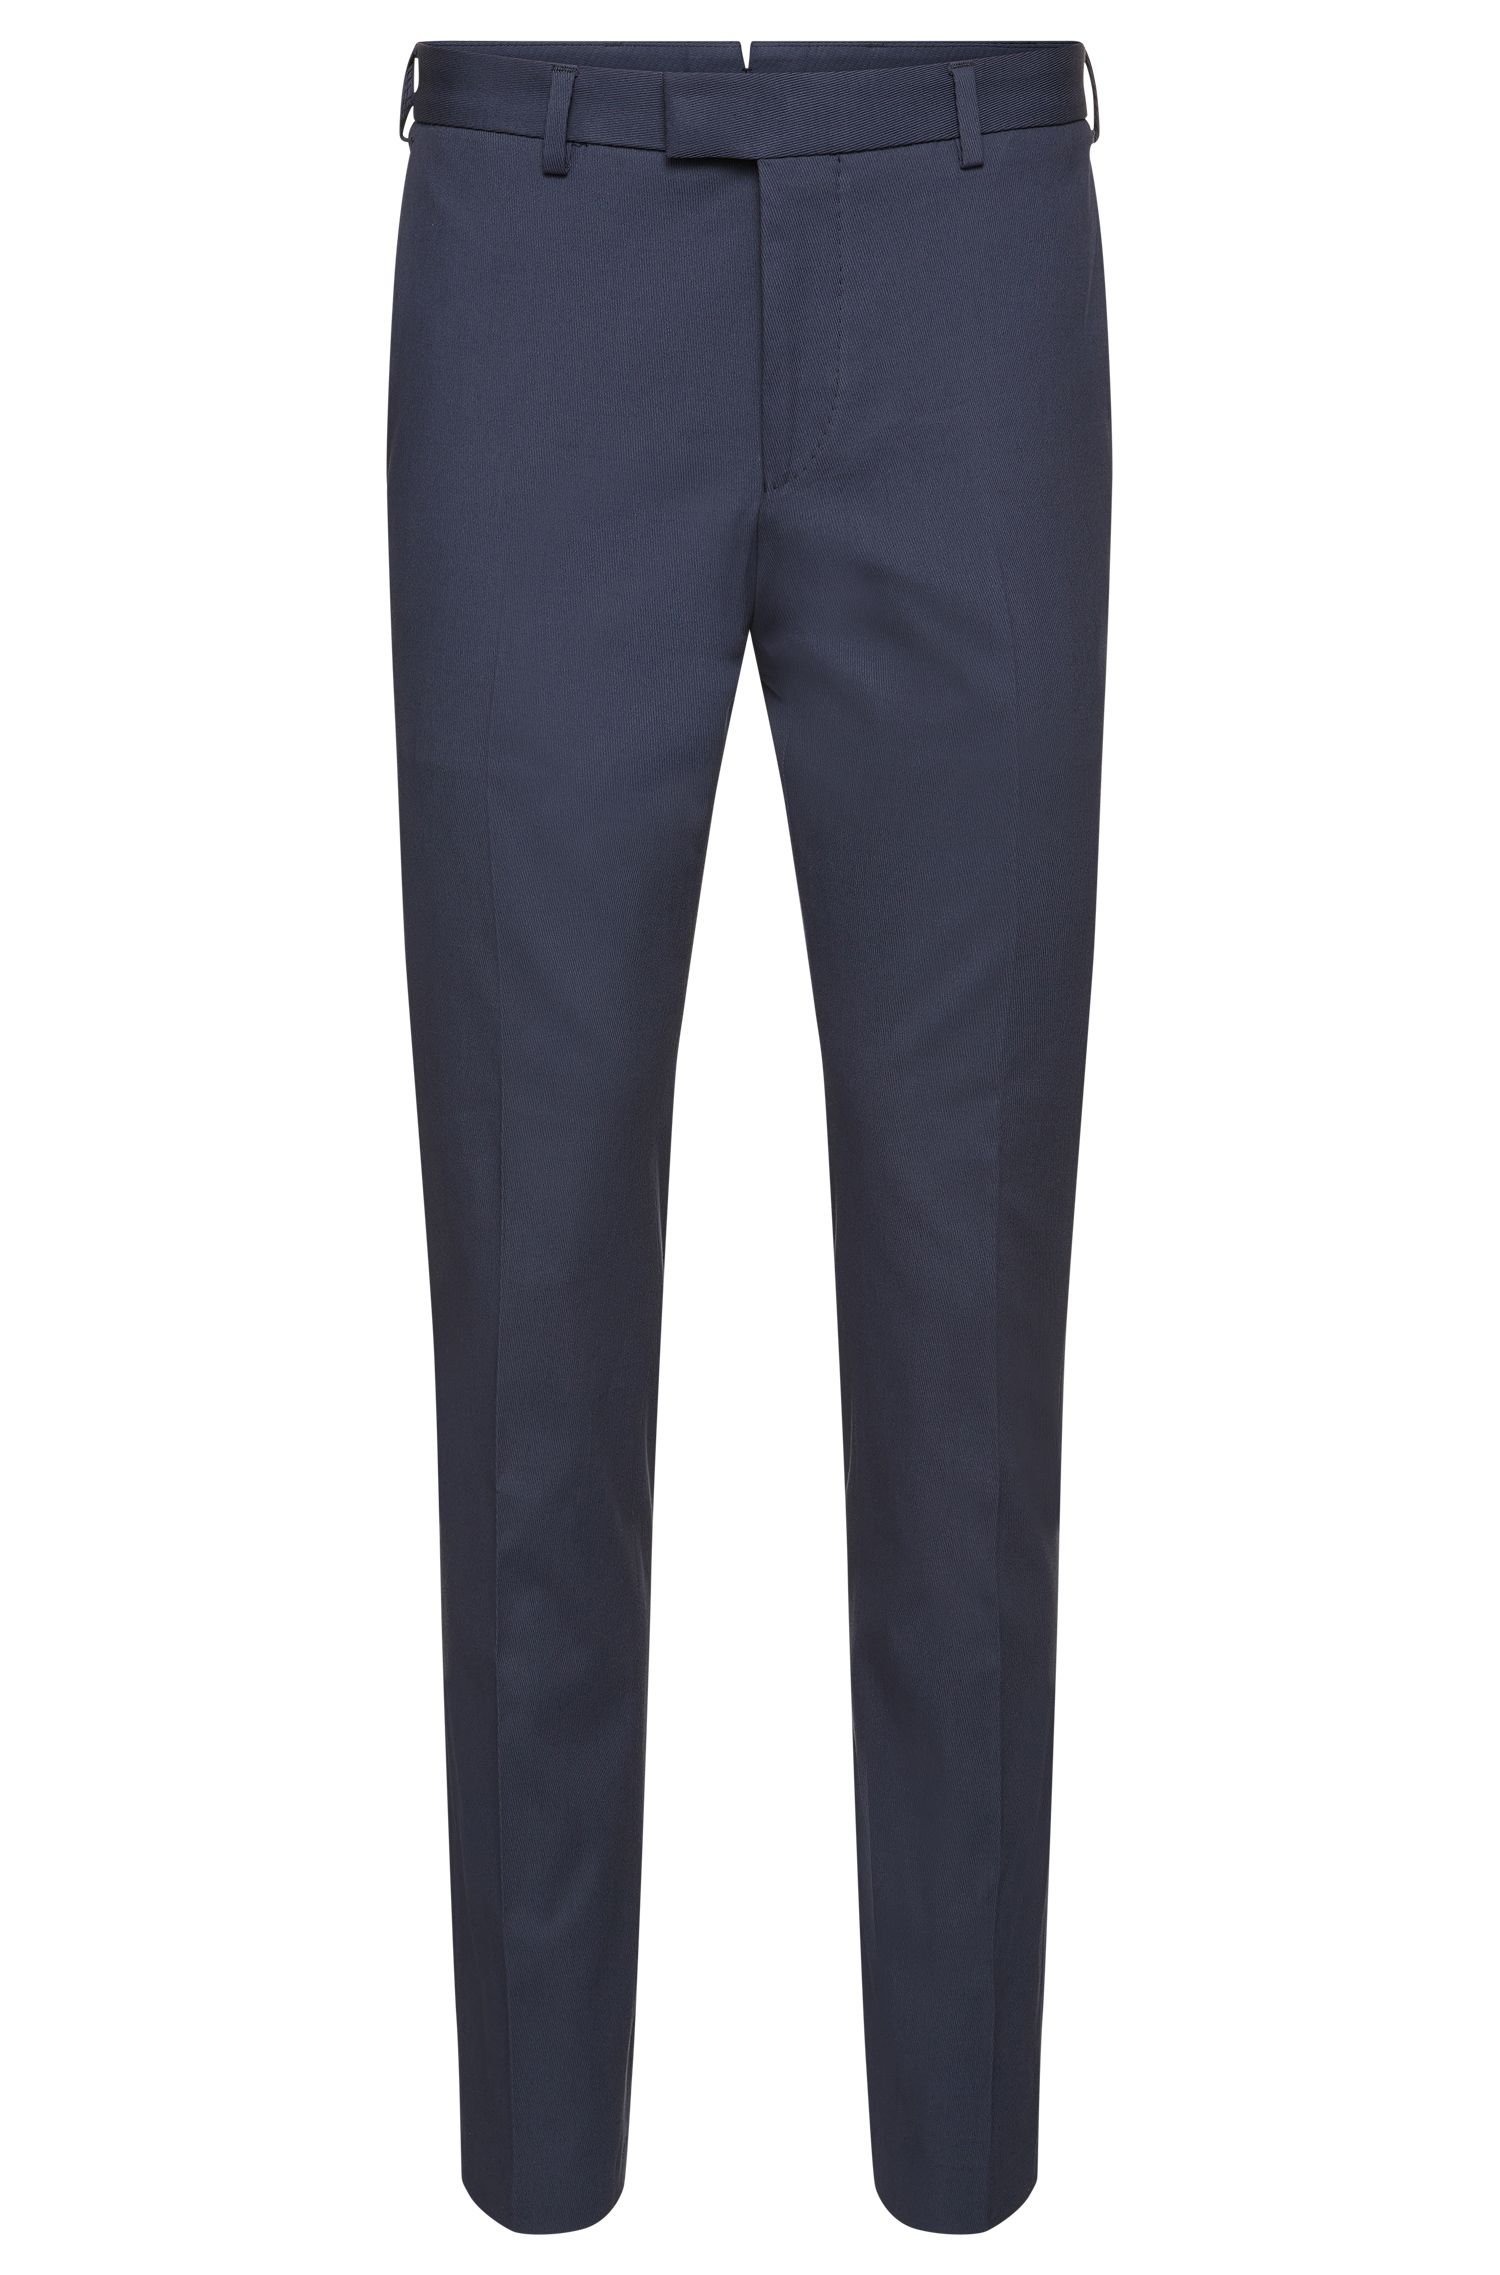 Slim-Fit Tailored Hose aus fein gerippter Stretch-Baumwolle: 'T-Bak'